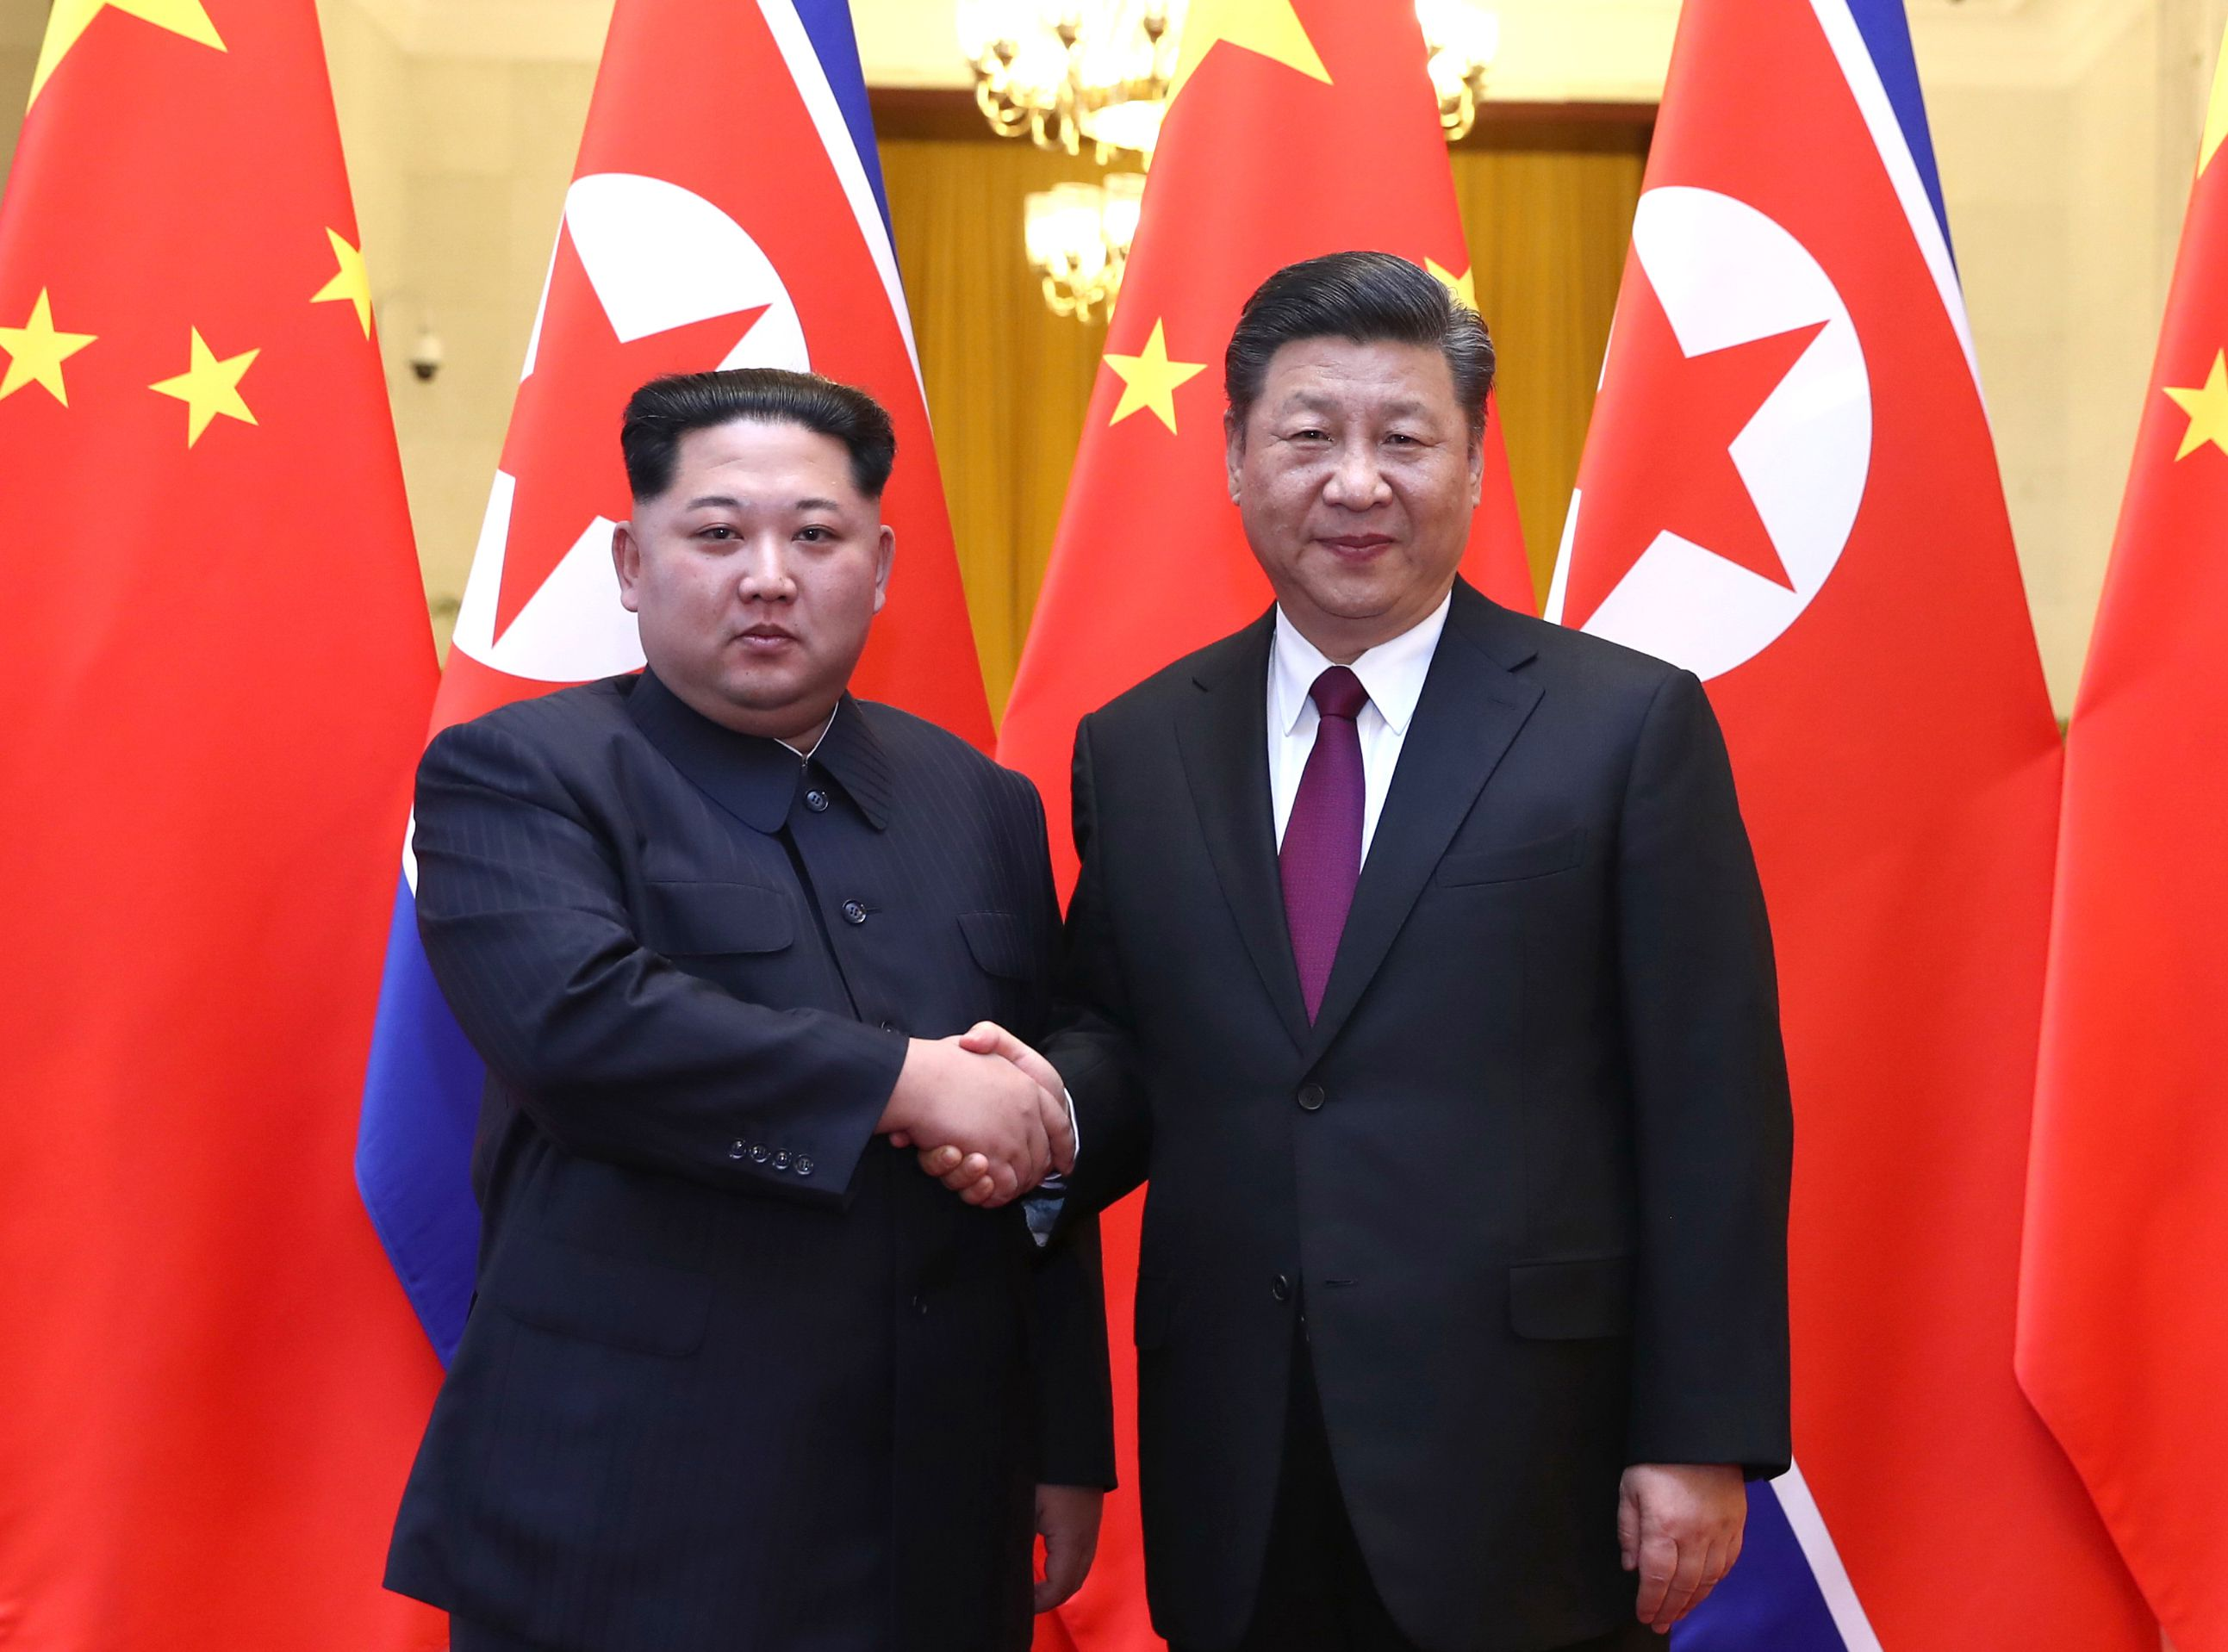 Kim Jong-un and Xi Jinping shake hands in front of red flags.